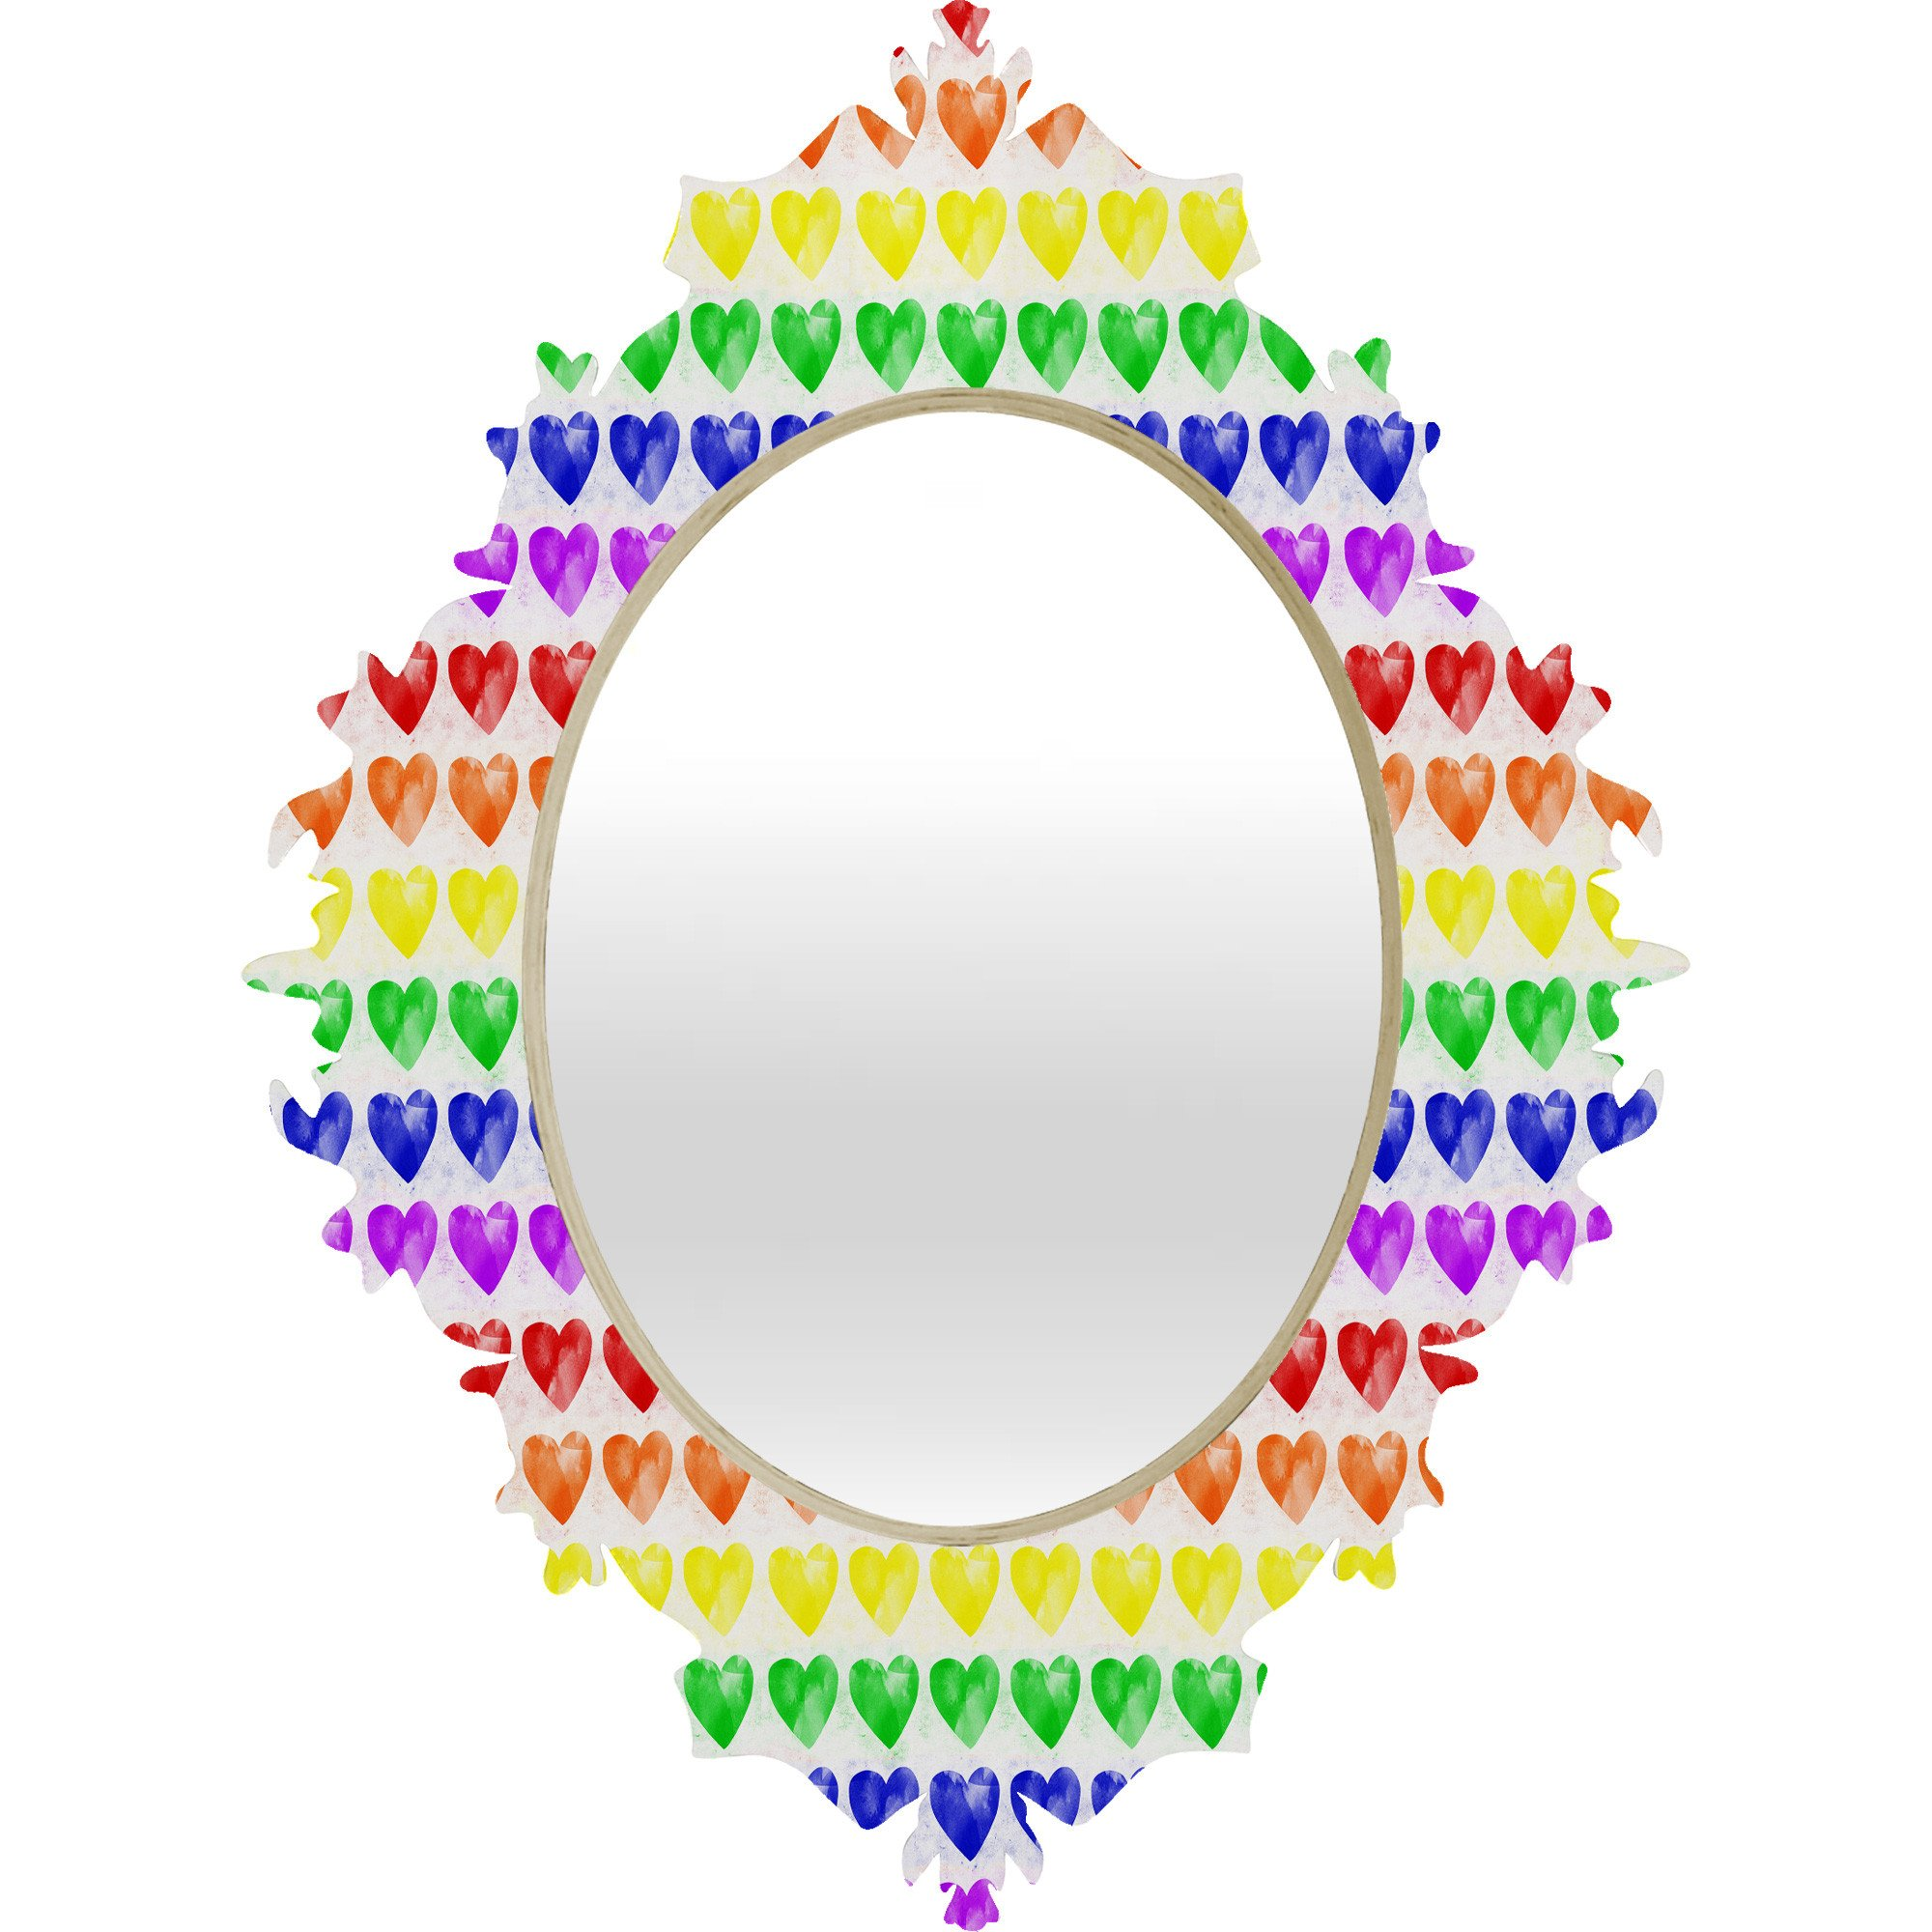 Rainbow clipart explosion. Happiness love baroque mirror